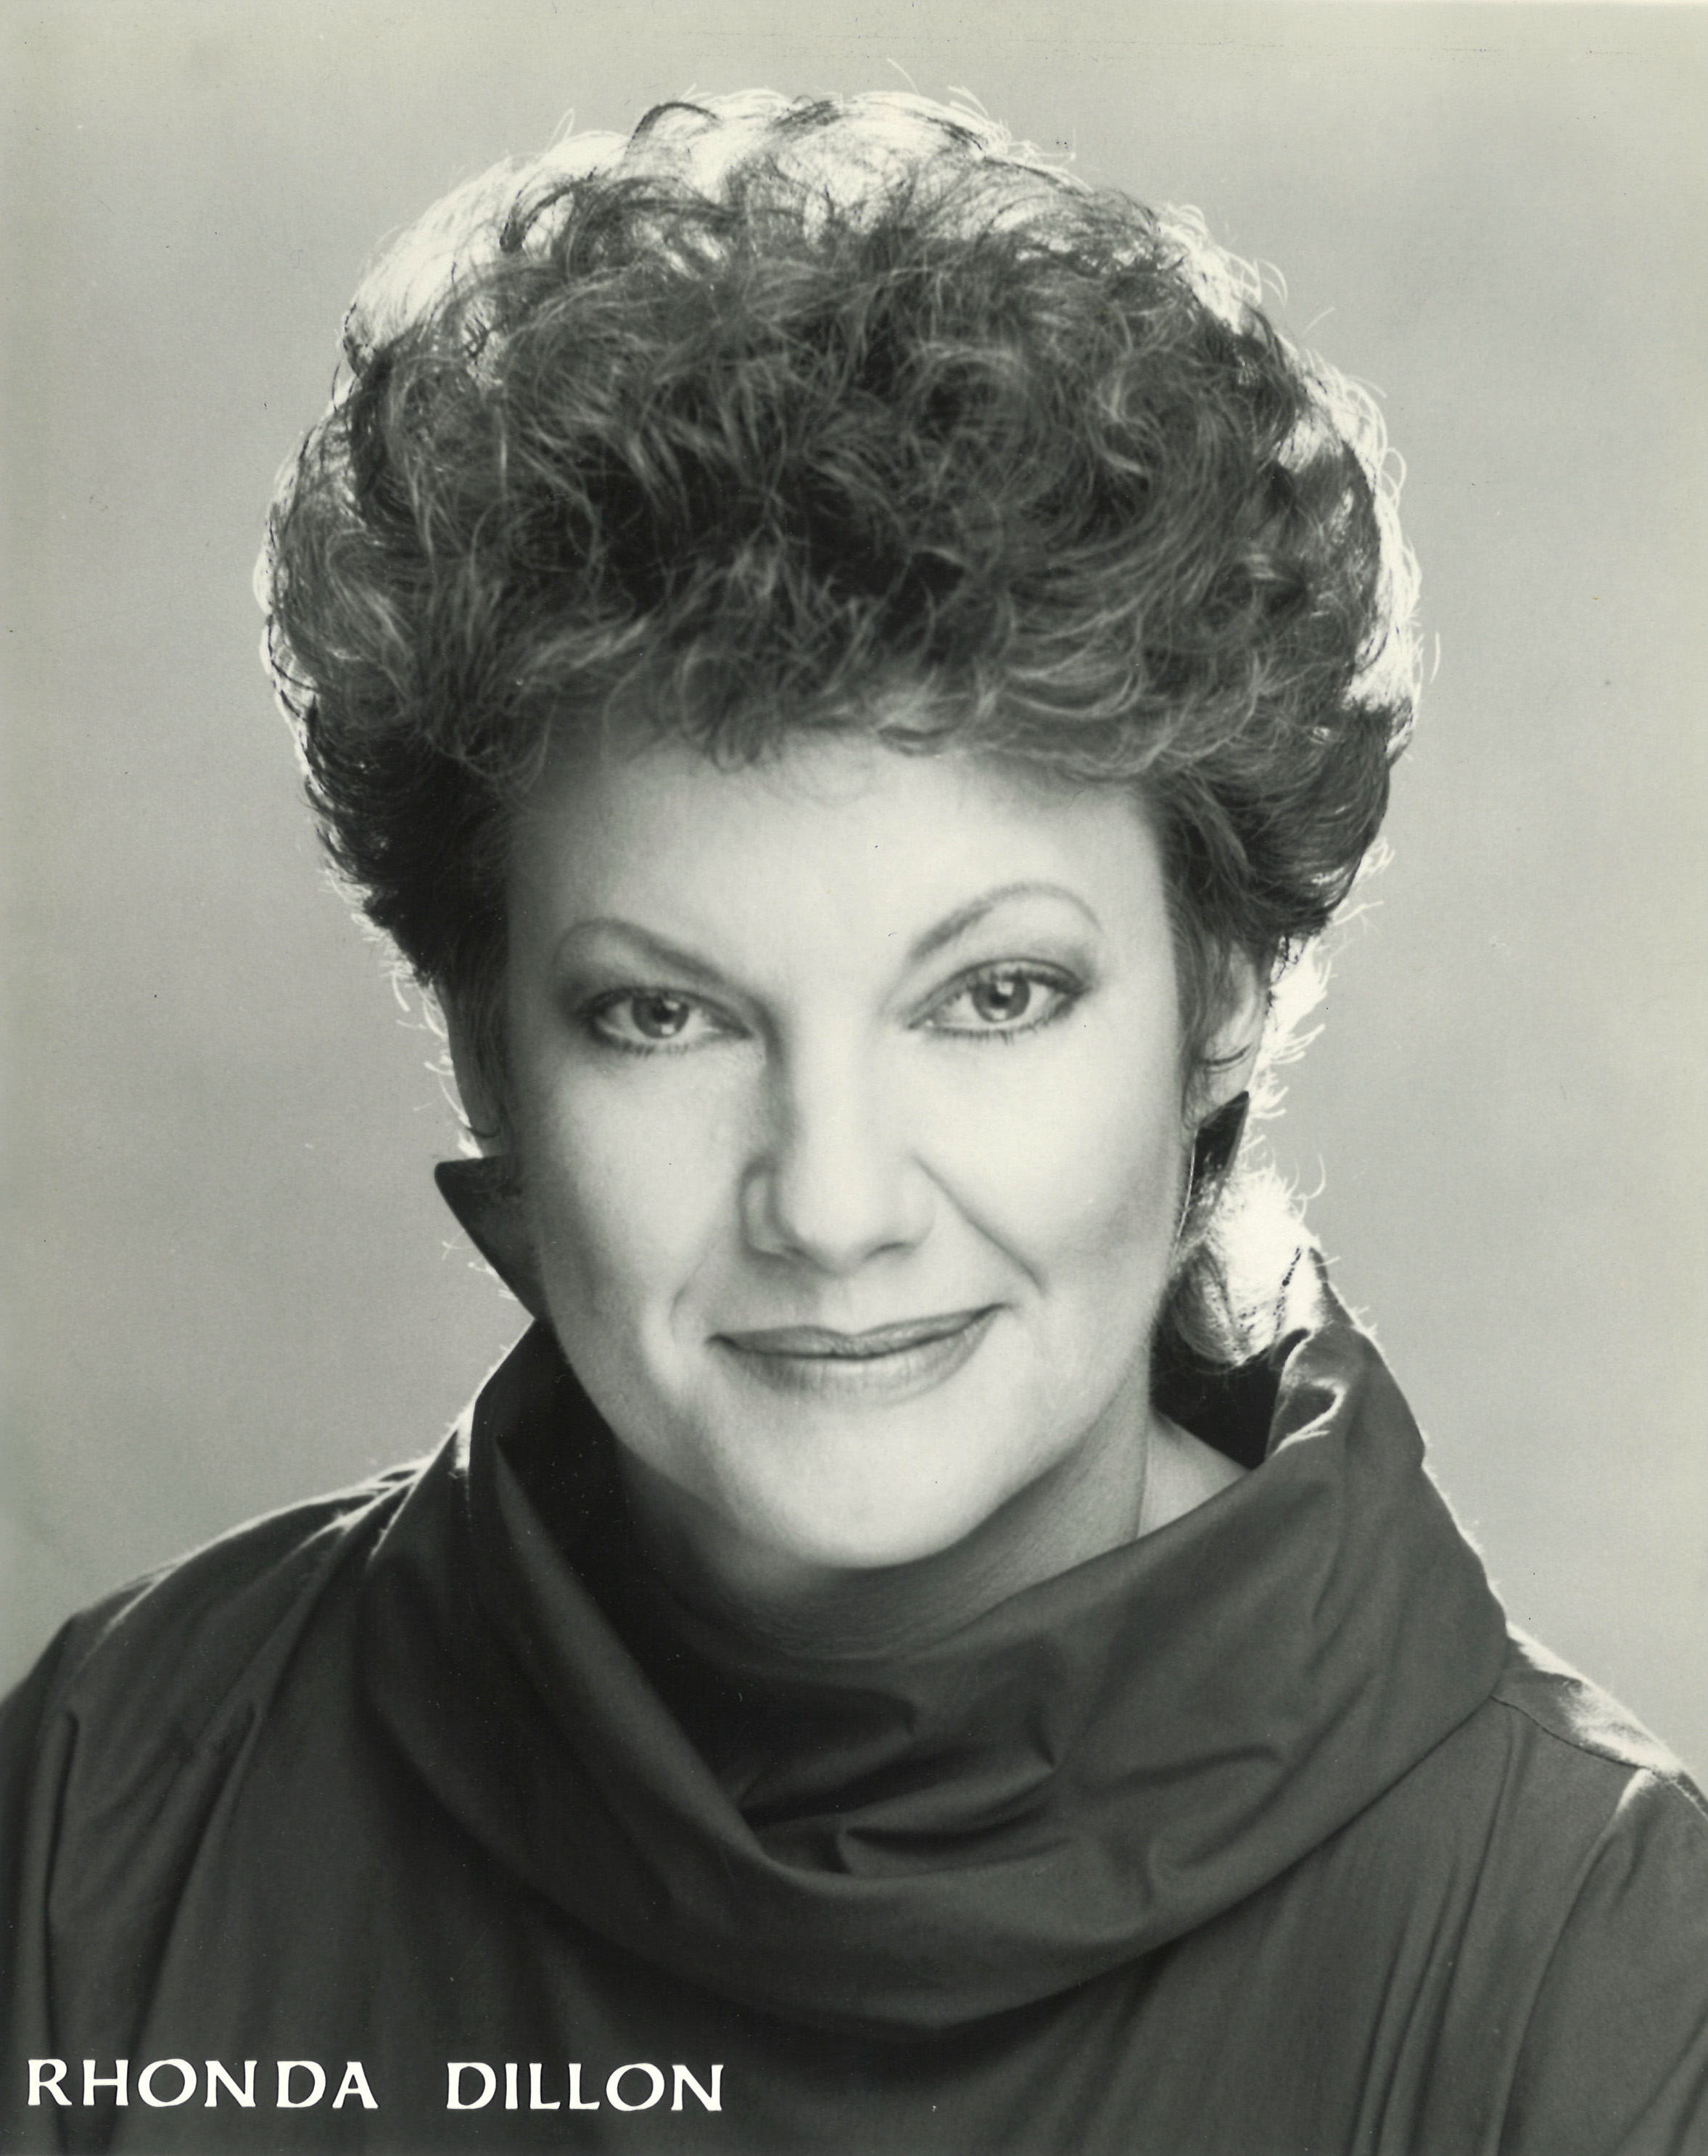 "Versatile singing actress, Rhonda Dillon, made her Broadway debut in 1988 in Sir Andrew Lloyd Webber's  The Phantom of the Opera.  She has subsequently appeared as both the prima donna ""Carlotta"" and the ballet mistress ""Madame Giry"" with every company in the United States! She holds a master's degree in choral conducting from the University of Southern California, where she toured Australia and New Zealand as a member of the USC Chamber Singers. She has sung with the LA Opera and was a featured nun in  The Firey Angel  by Prokovief. With the Los Angeles Master Chorale, she was a featured soloist at the Hollywood bowl. She toured the Western US as soloist with the Roger Wagner Chorale. Her voice can be heard on the soundtracks of such films as  Infidelity; Like Father Like Son; Burglar  and  Empire of the Sun.  Most recently Ms. Dillon created the role of Brenda in  Life Begins Again . Rhonda teaches at Cerritos College, El Camino College and College of the Canyons. She is on the board of NATS-Los Angeles as a director. Many of her students have won prestigious awards and are studying and teaching a new generation of singing artists!"